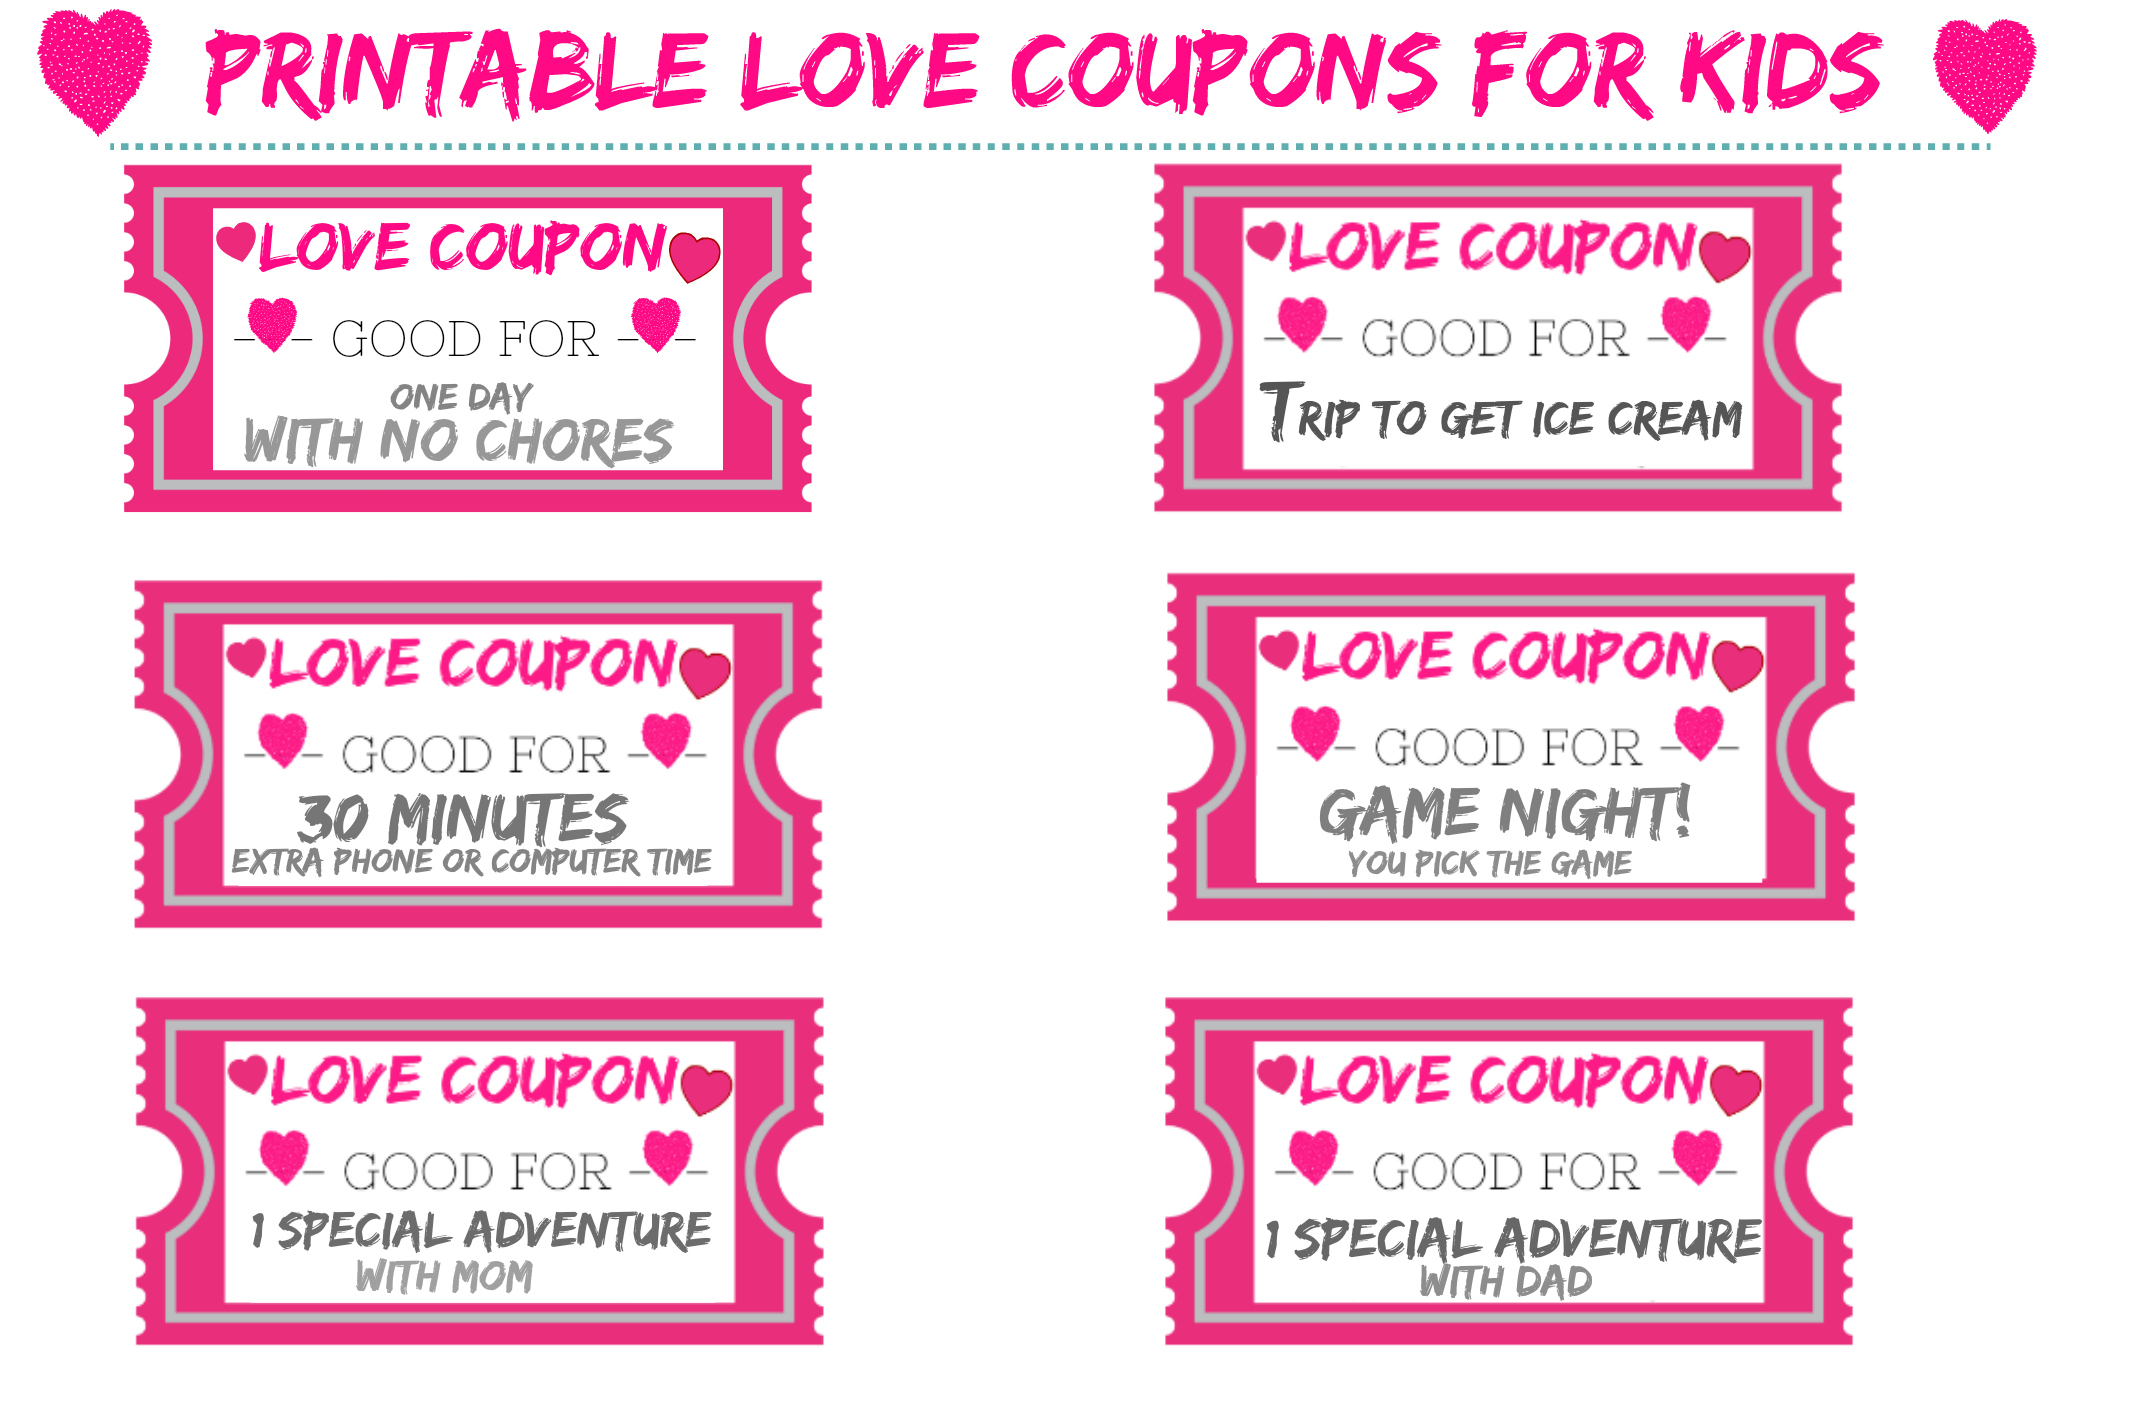 picture about Friendship Coupons Printable called Cost-free Printable Appreciate Discount coupons For Small children For Valentines Working day